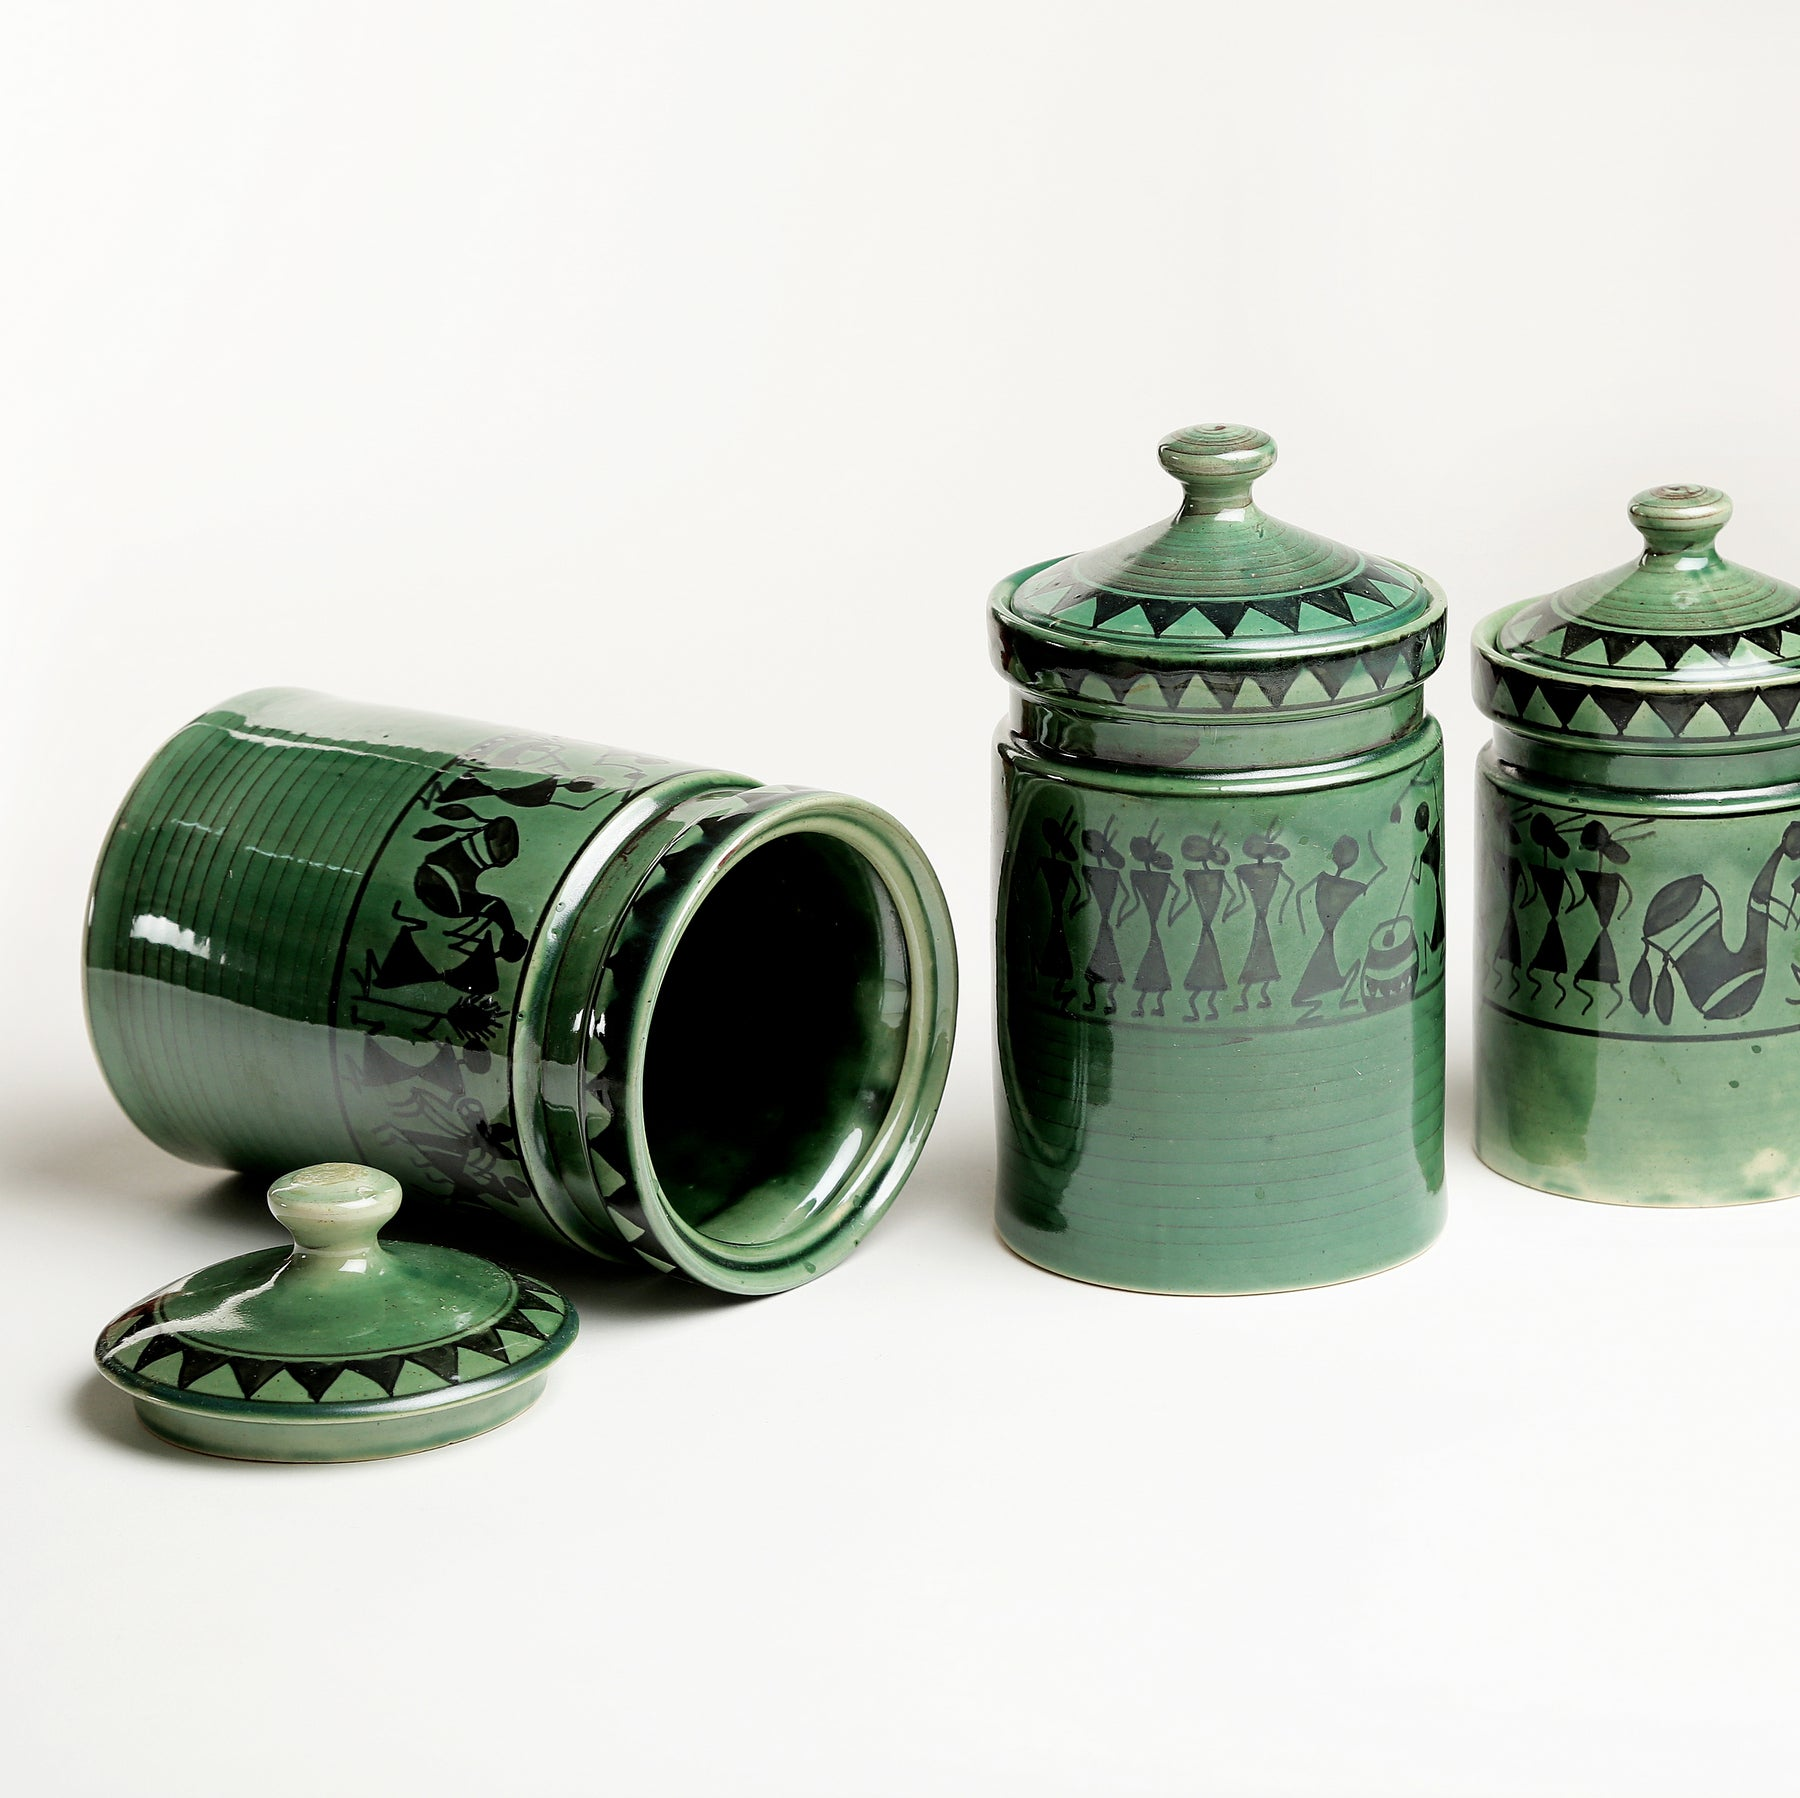 Green  Warli Handpainted Ceramic Cookie Jars/Barni/Containers - Set of 3